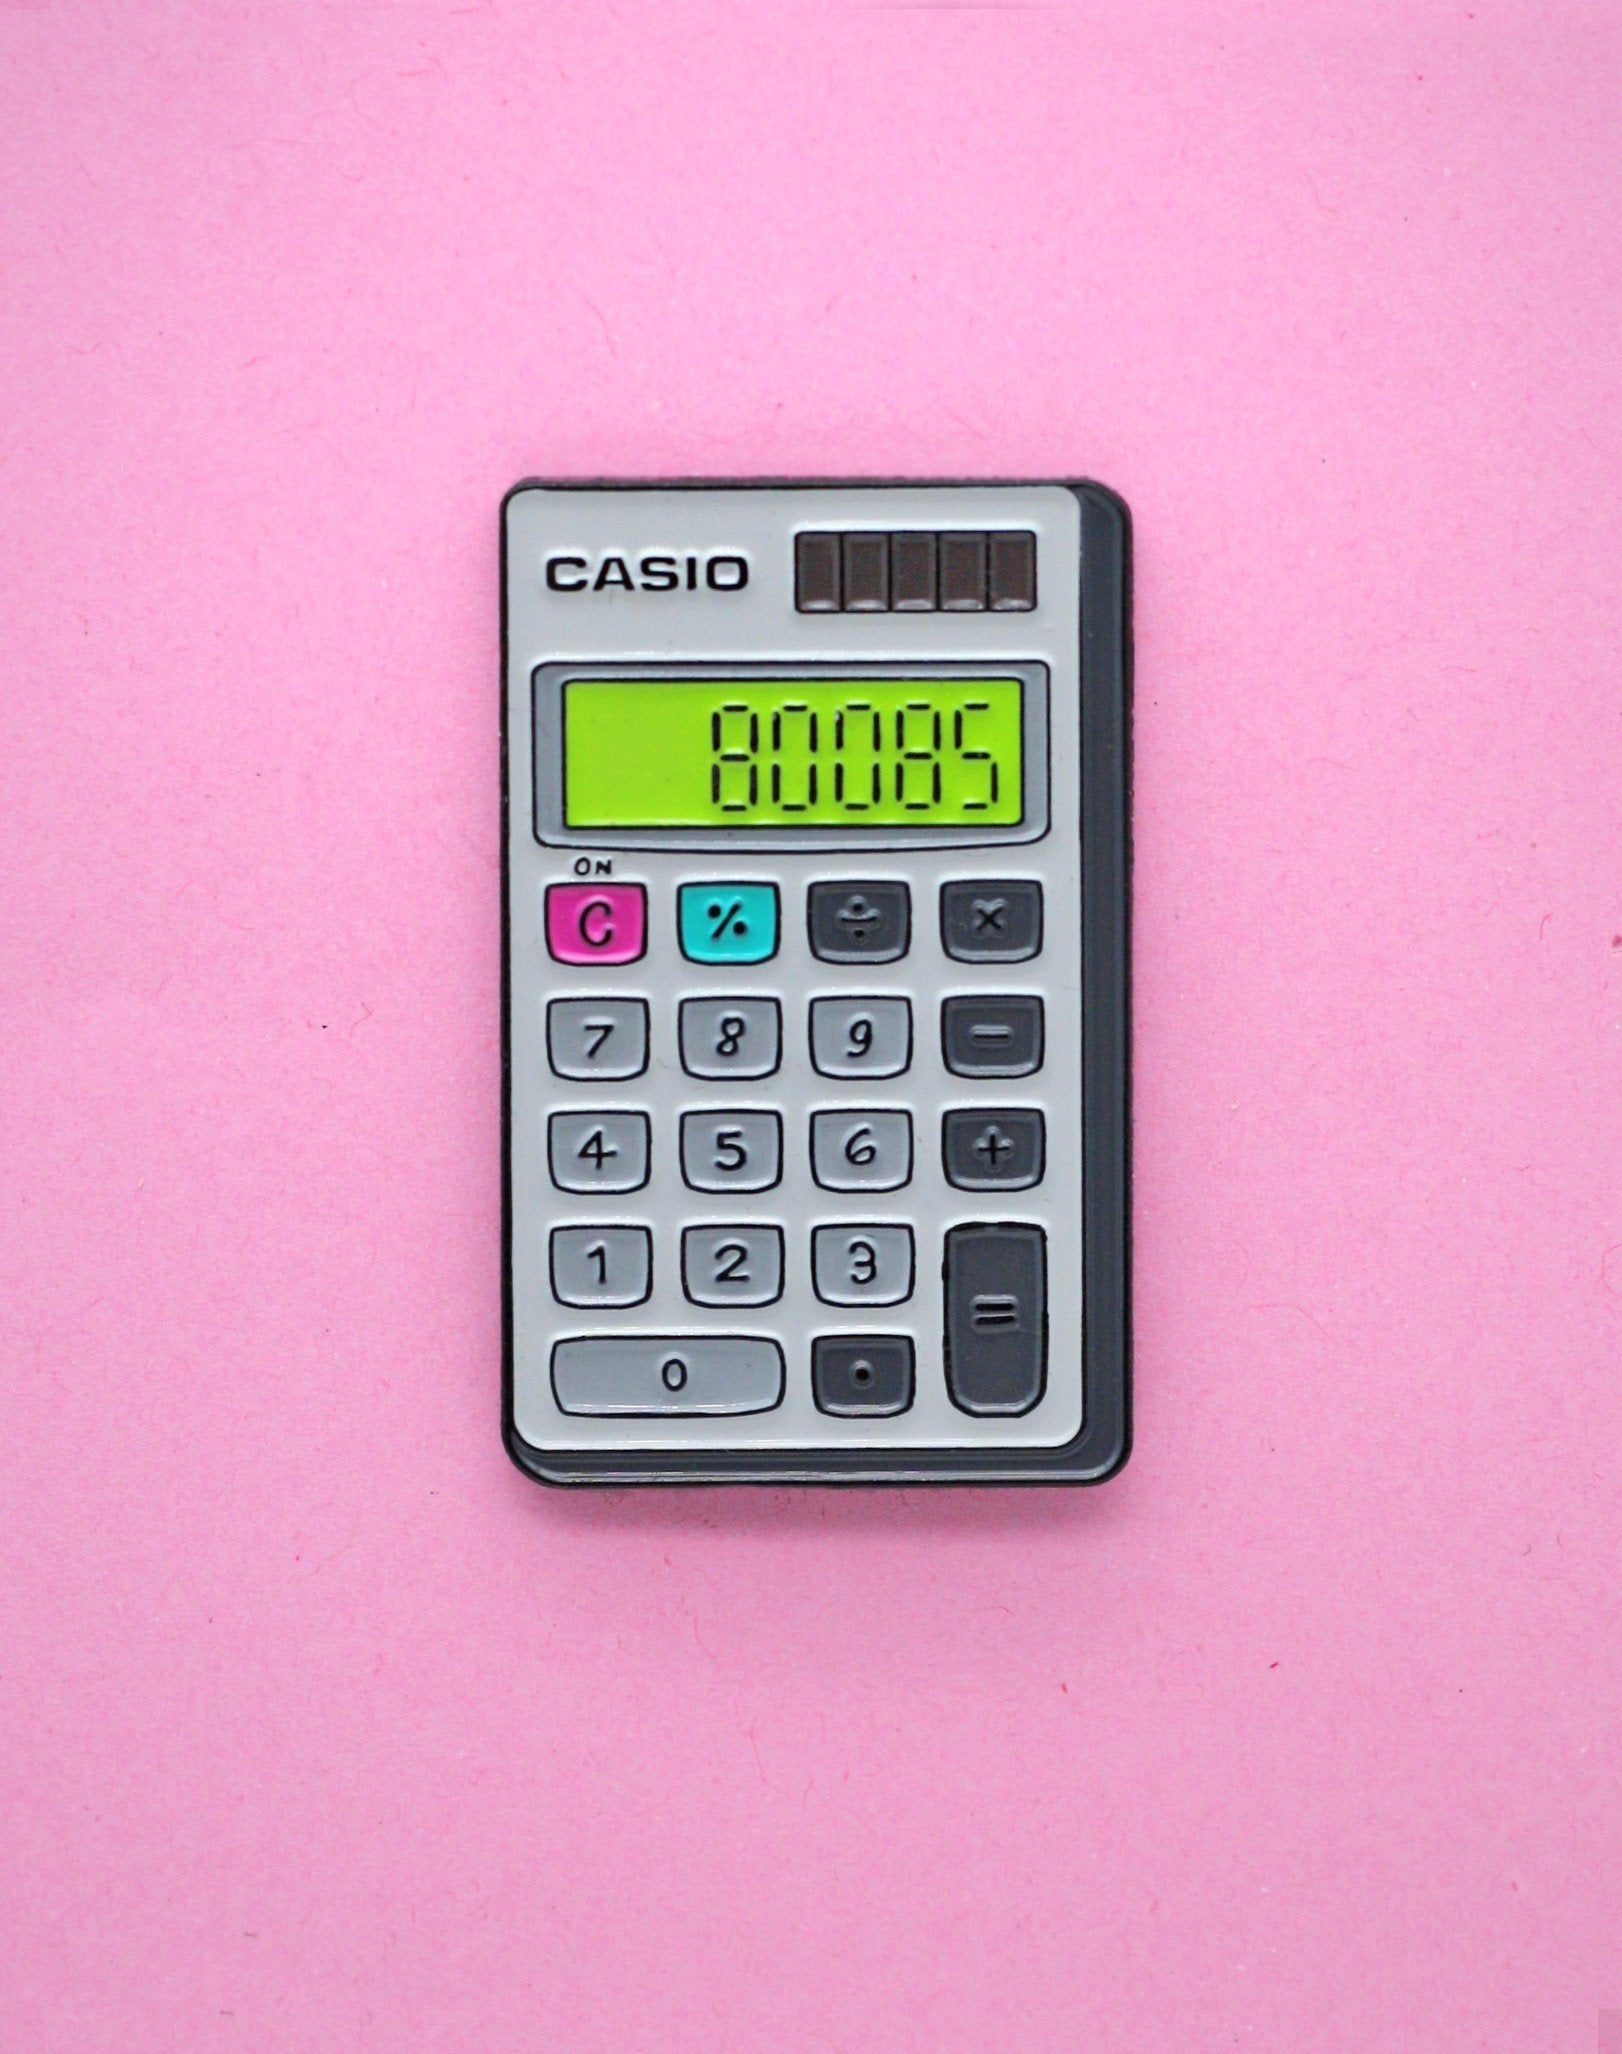 Retro Glow in the Dark Boobs Casio Calculator Enamel Pin badge | Best Pins & Patches